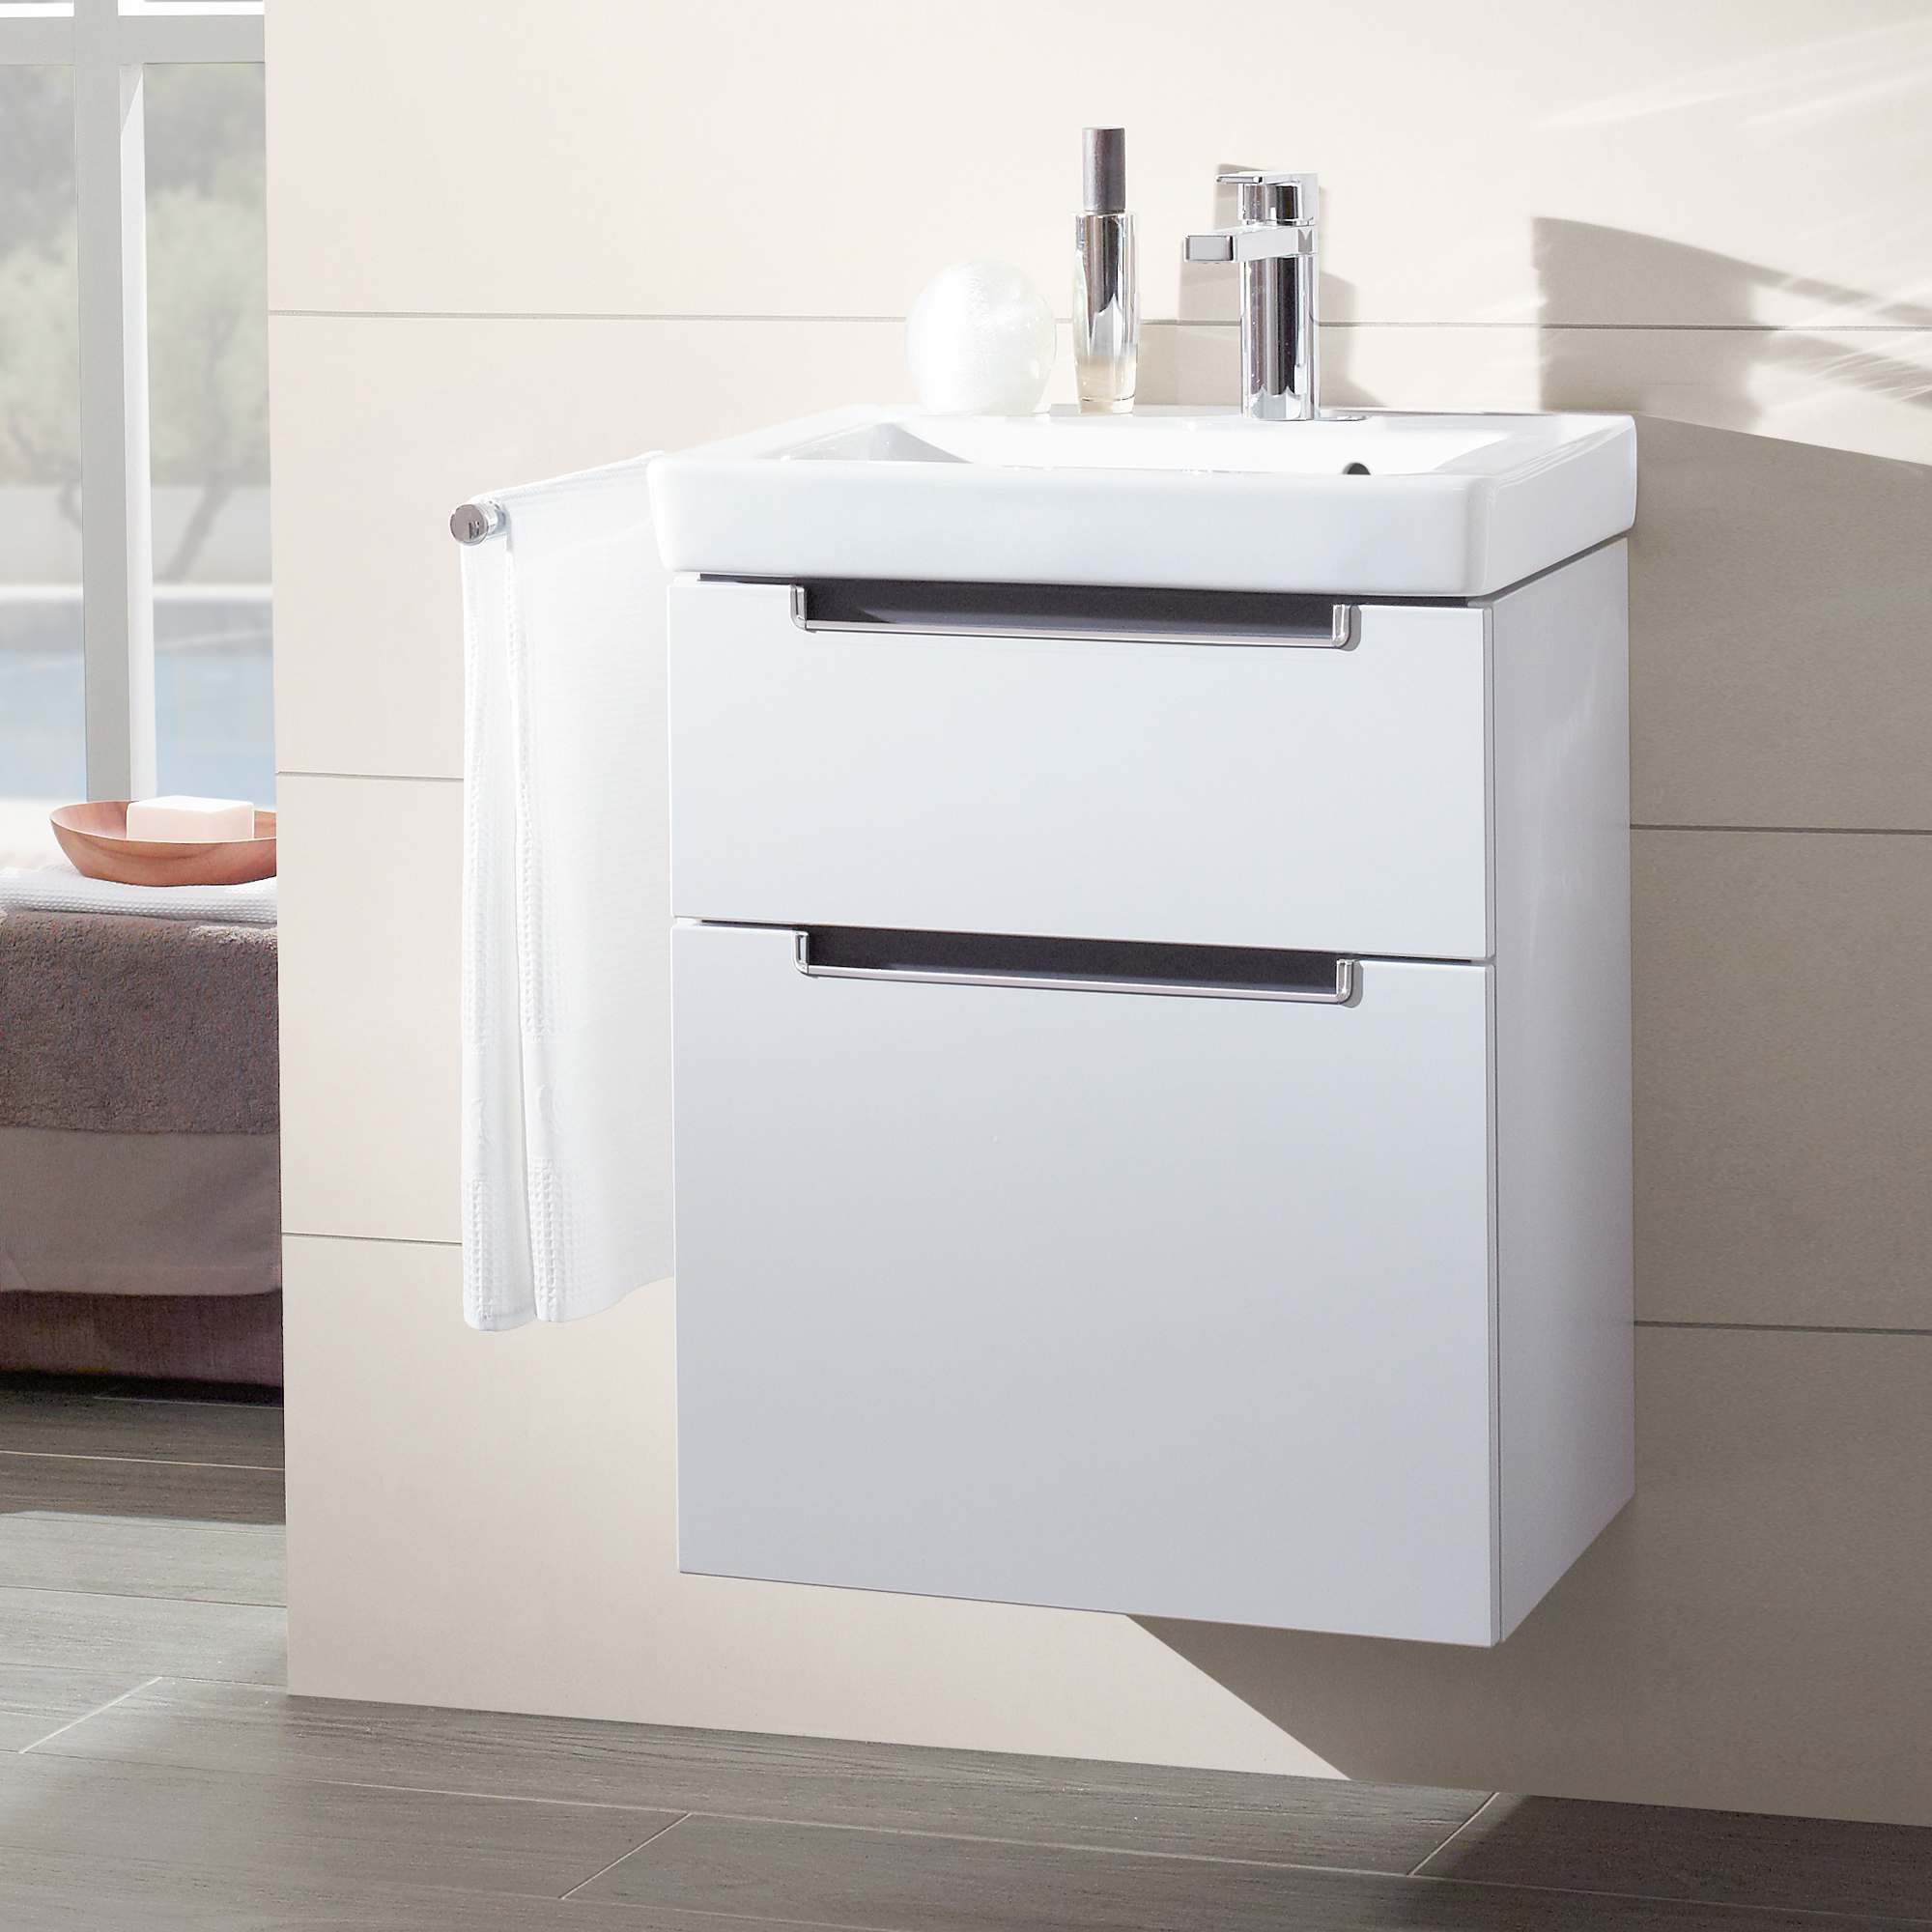 Villeroy Boch Subway 2 Hand Washbasin With Vanity Unit With 2 Pull Out Compartments 7315f0r1 A90710dh Reuter